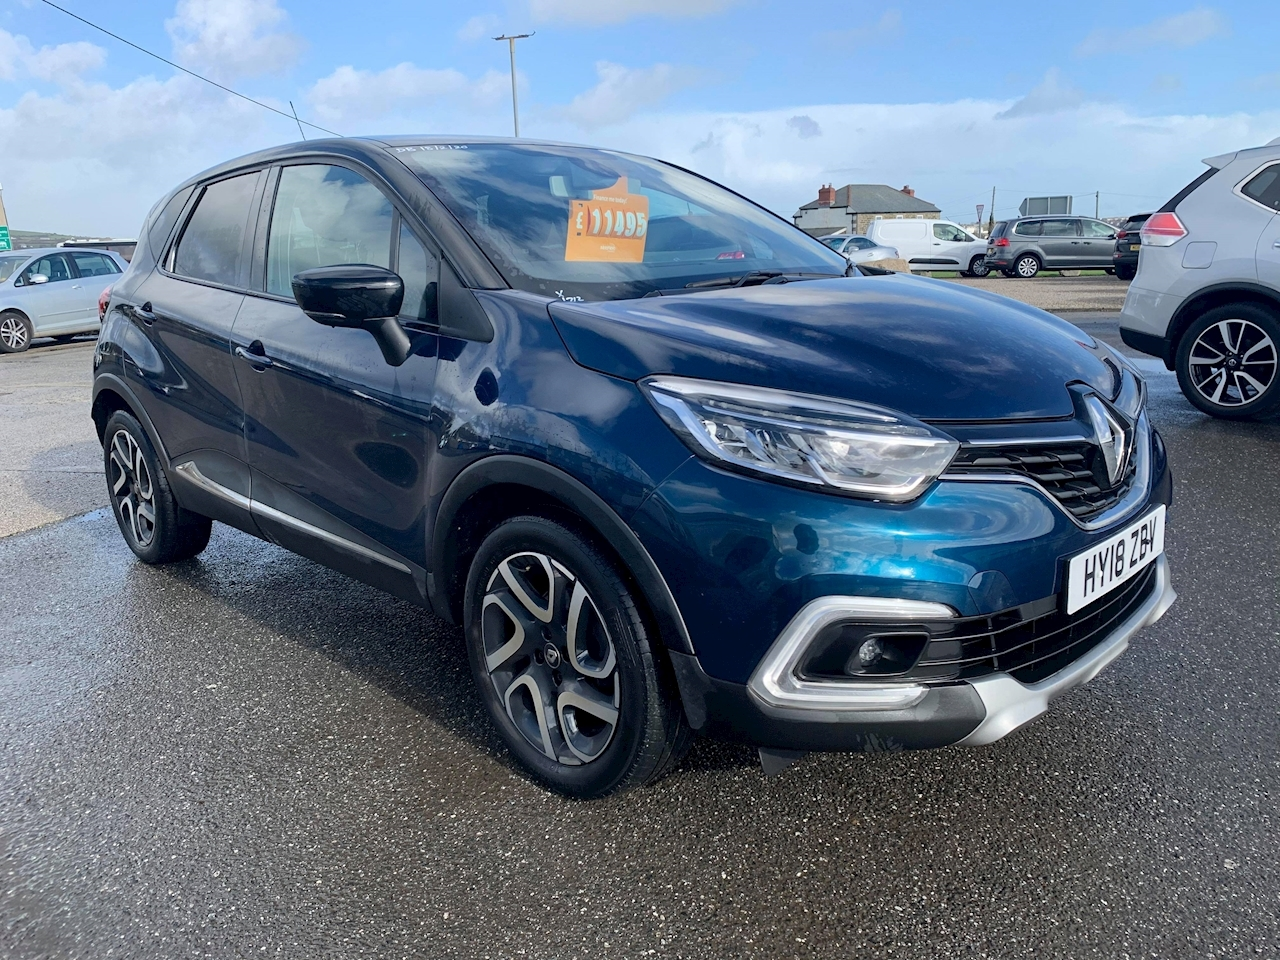 Renault Captur Dynamique S Nav Dci Hatchback 1.5 Manual Diesel